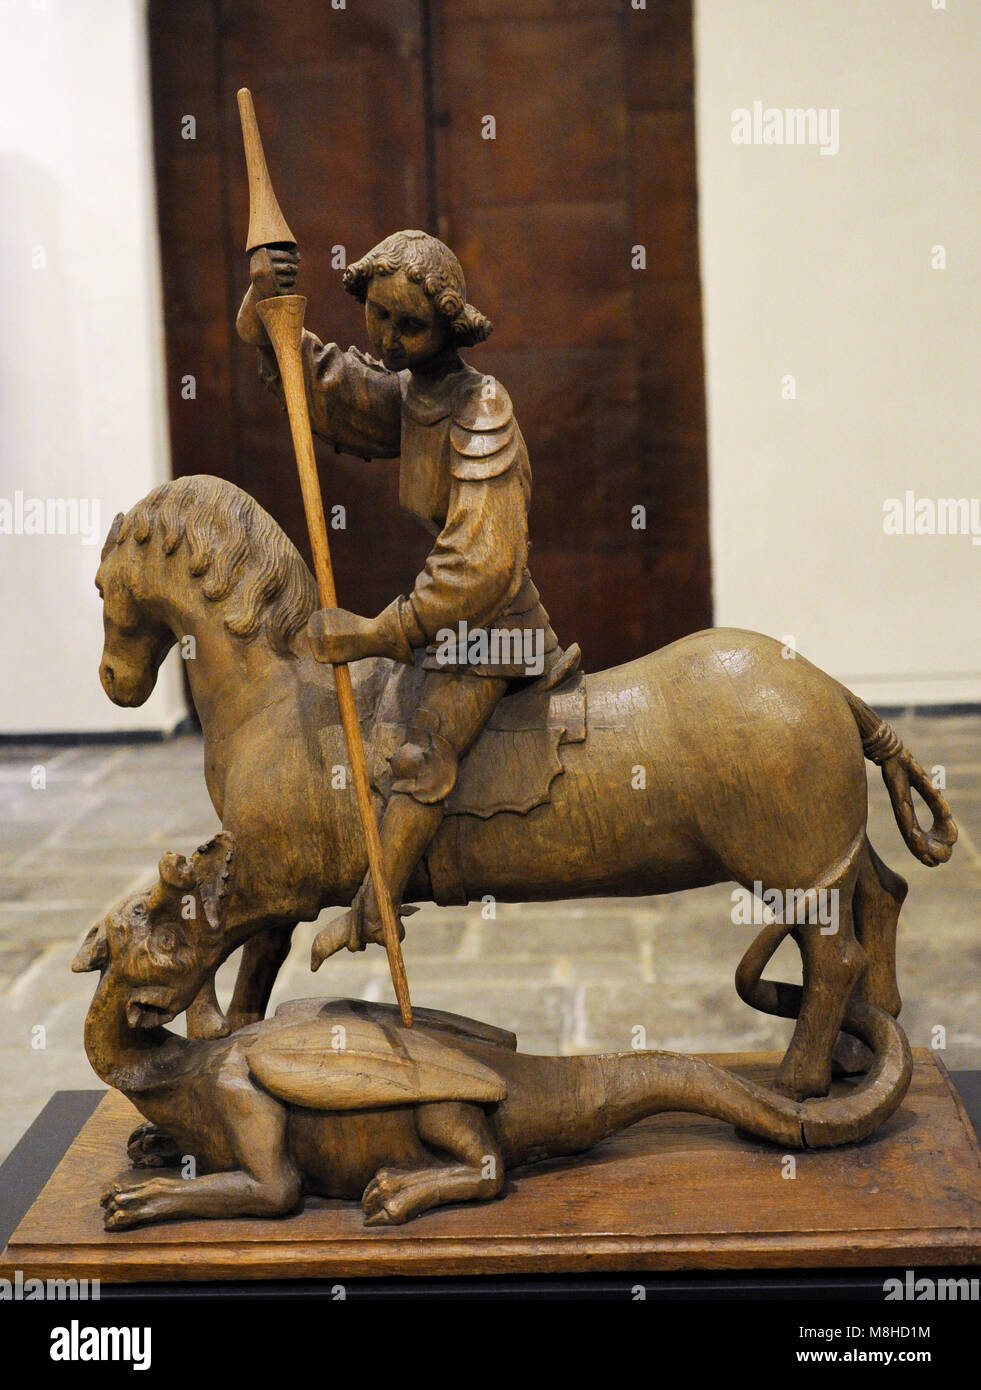 Saint George and the Dragon. Oak. Middle Rhine, Germany. 15th century. Museum Schnütgen. Cologne, Germany. - Stock Image